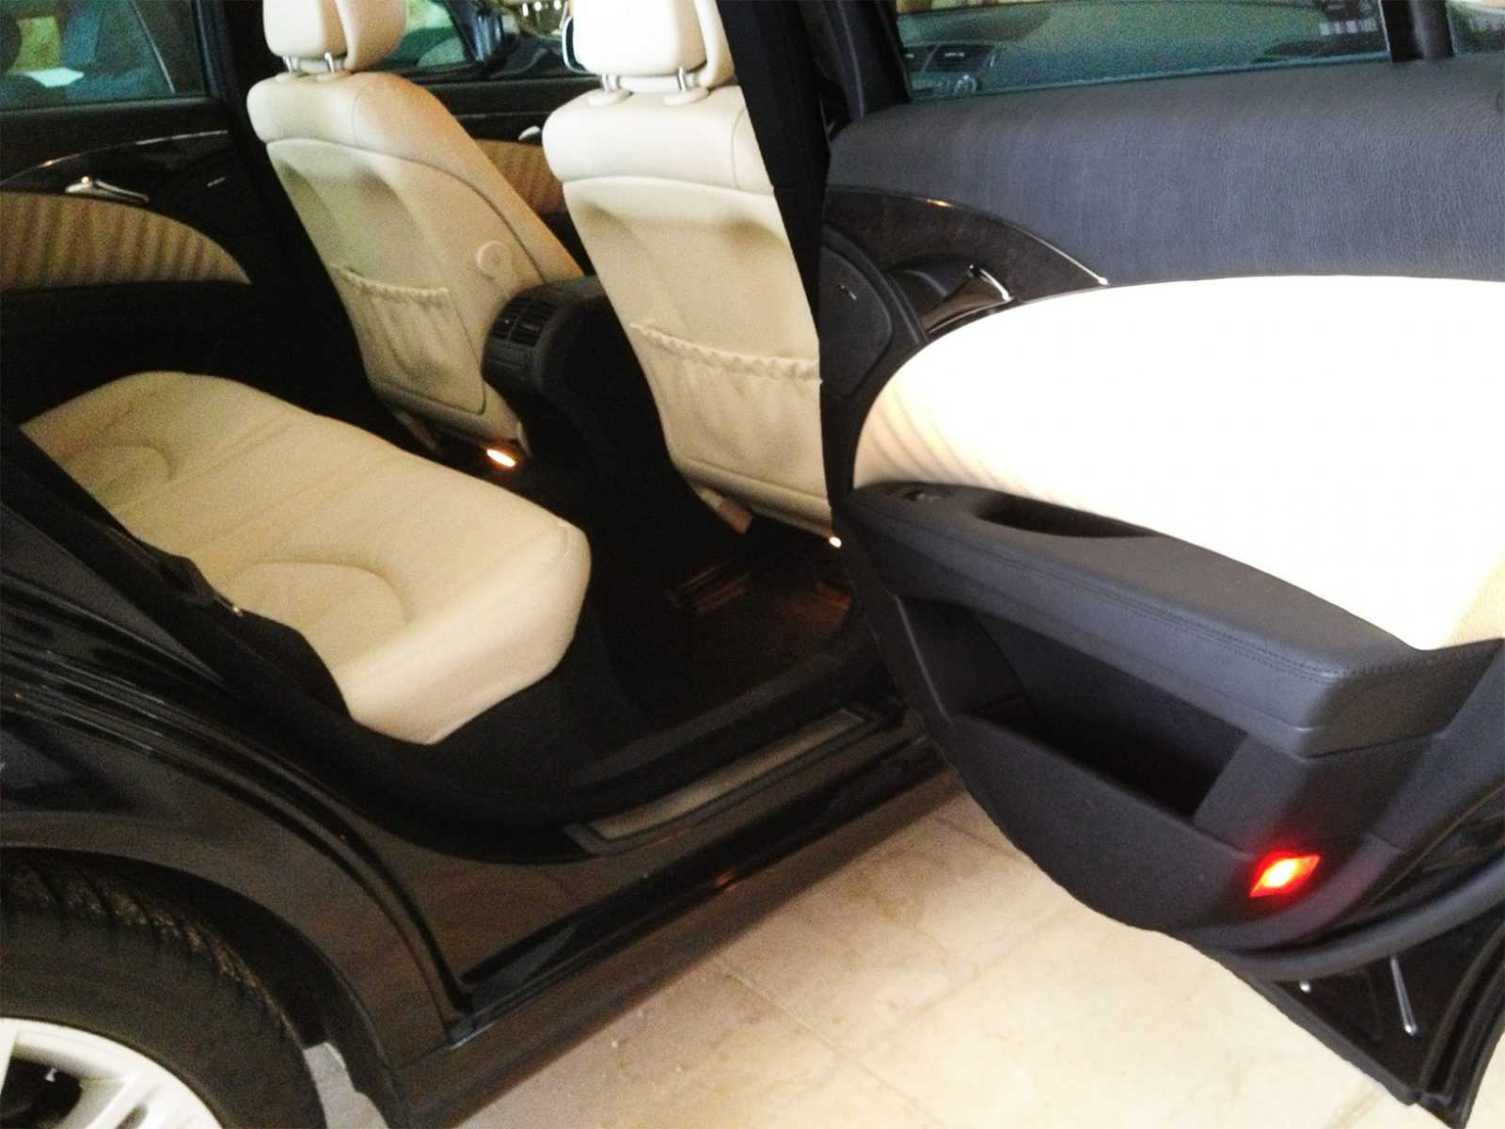 Vehicle equipped with safety belts